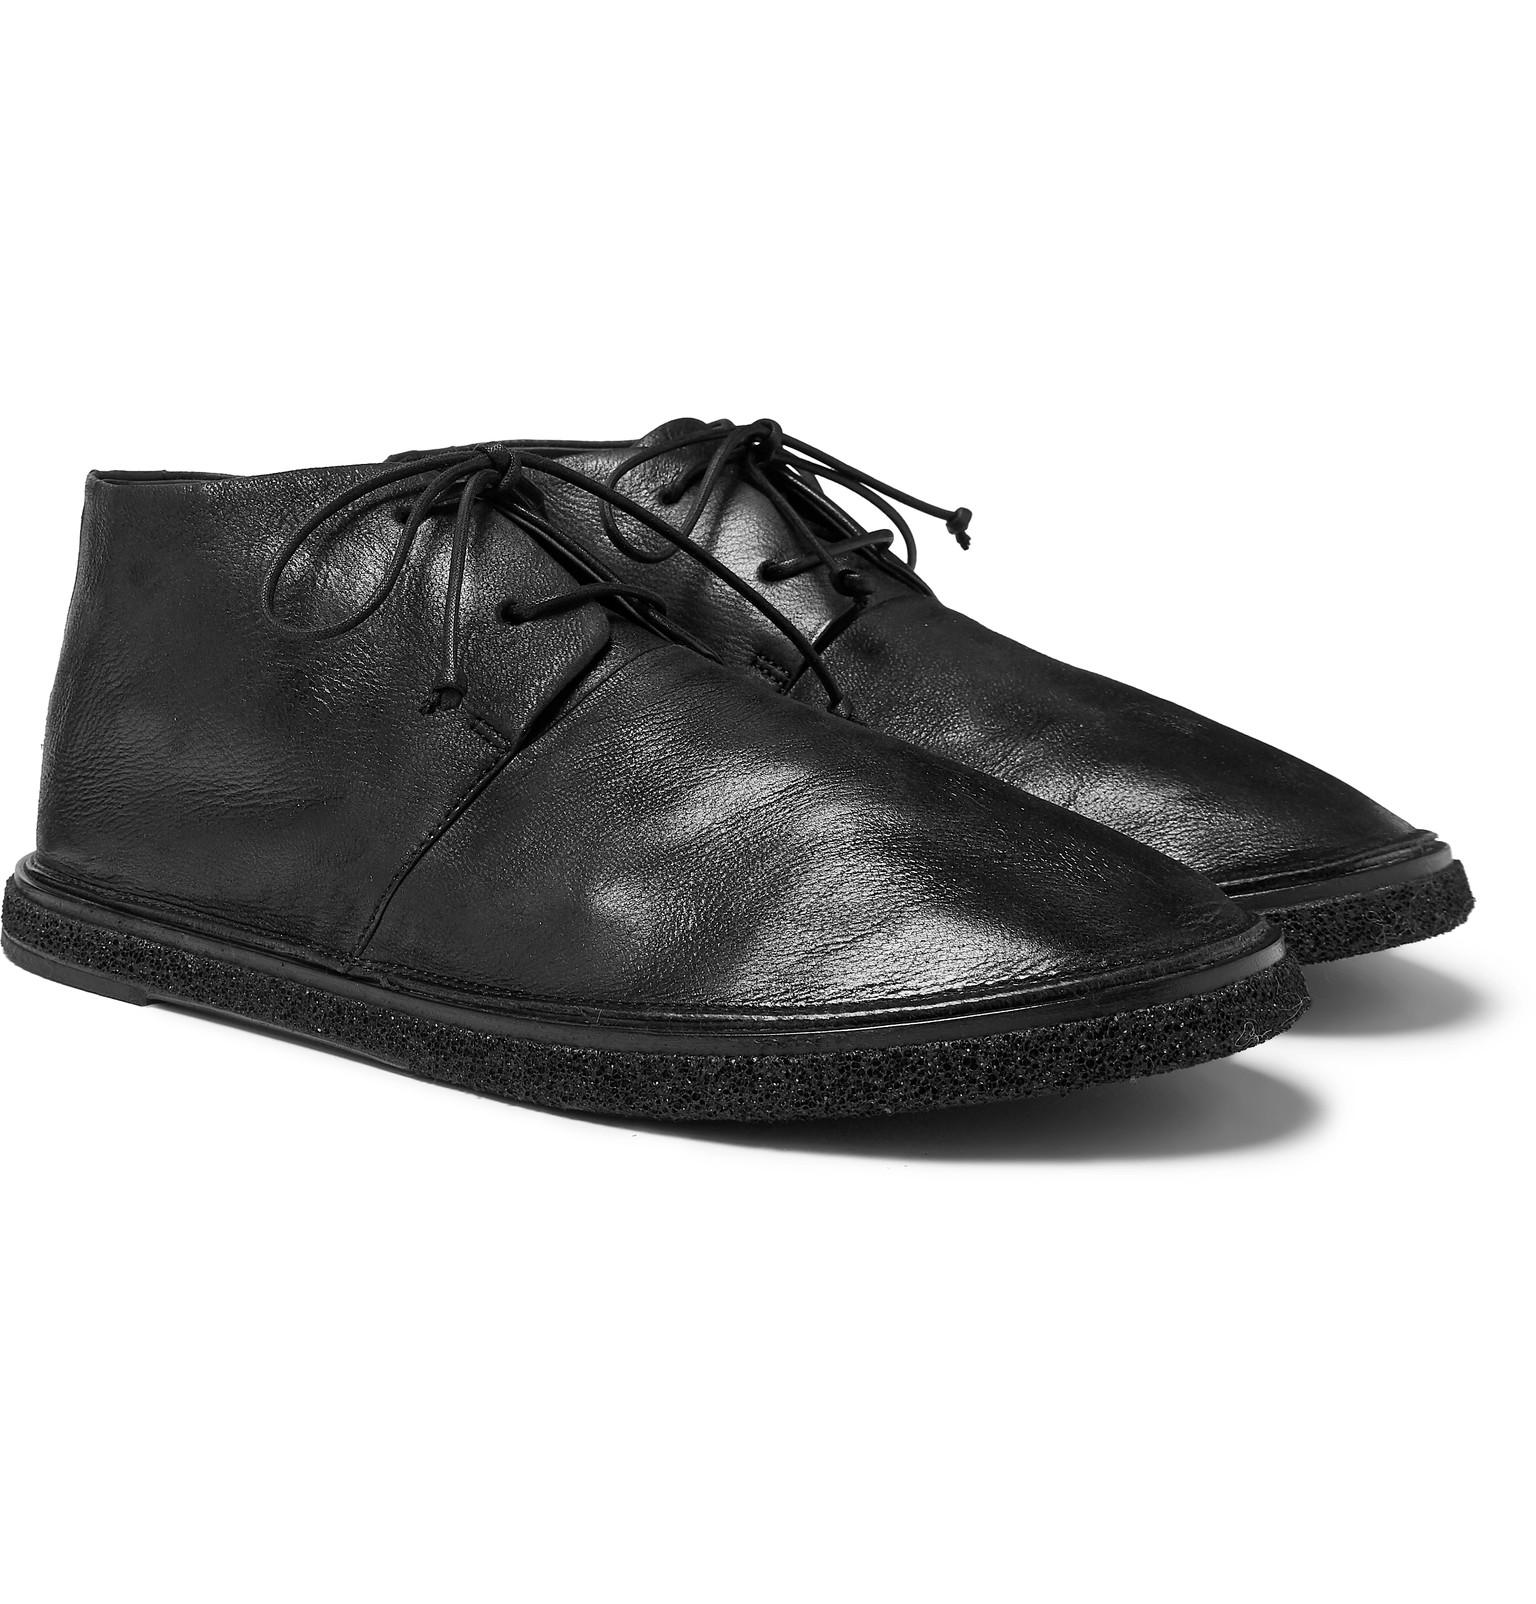 9e3425548f16 Lyst - Marsèll Stag Leather Chukka Boots in Black for Men